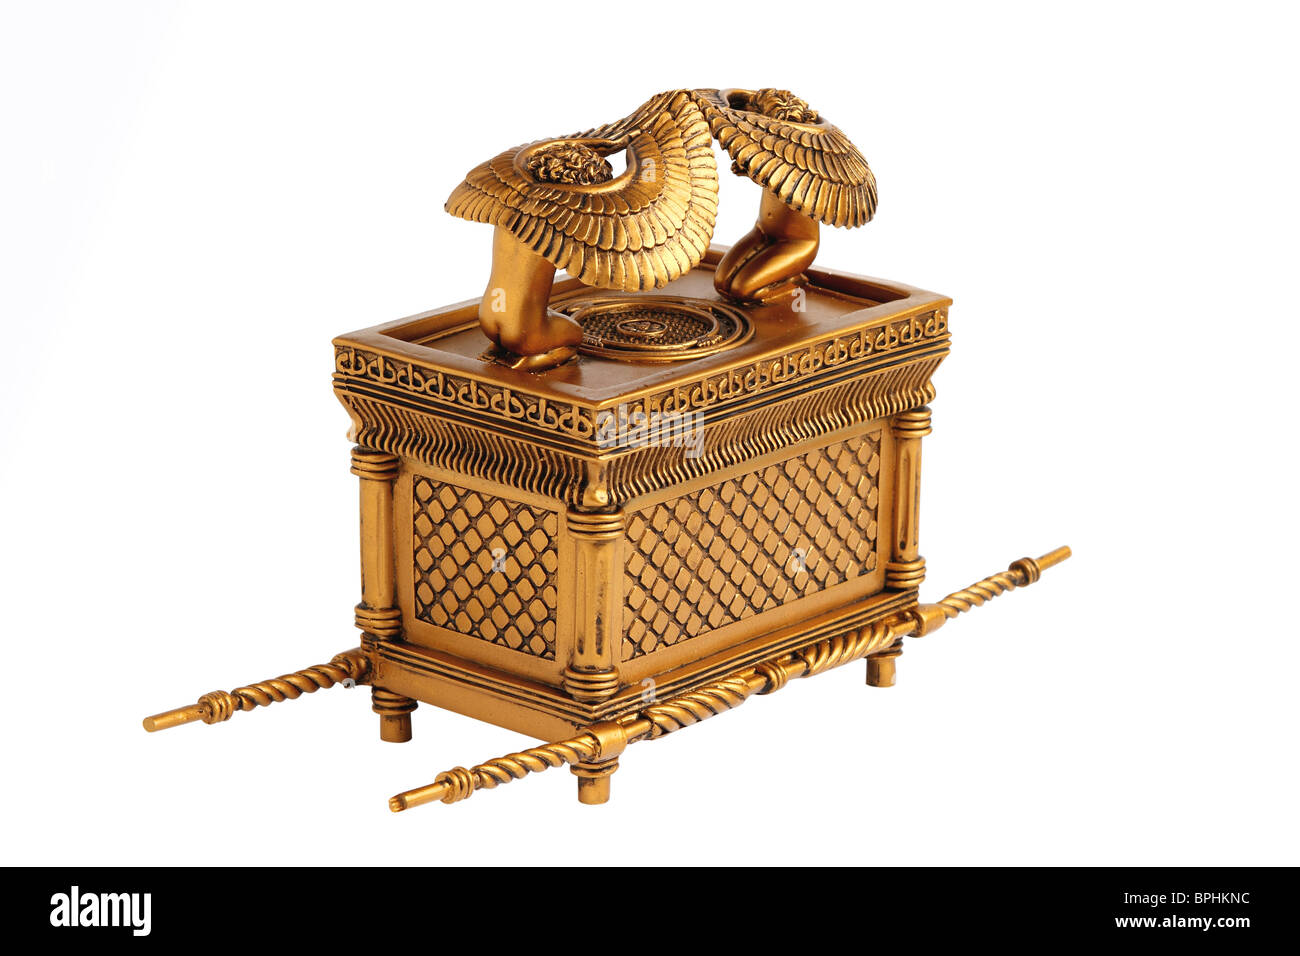 Ark of the Covenant - Stock Image